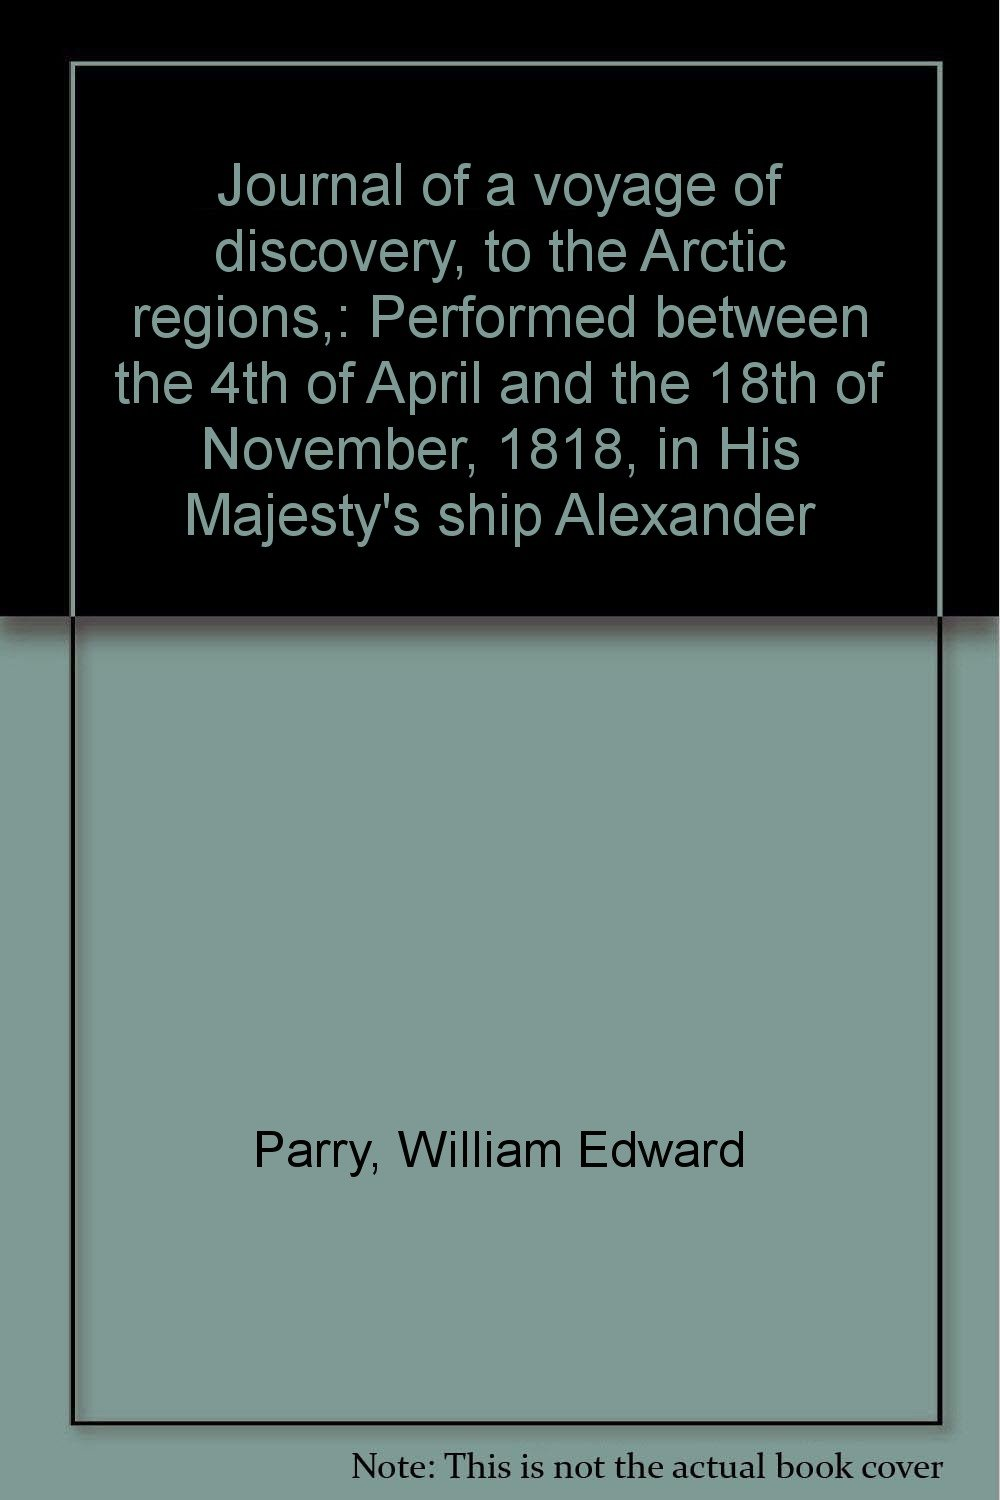 Journal of a voyage of discovery, to the Arctic regions,: Performed between the 4th of April and the 18th of November, 1818, in His Majesty's ship Alexander